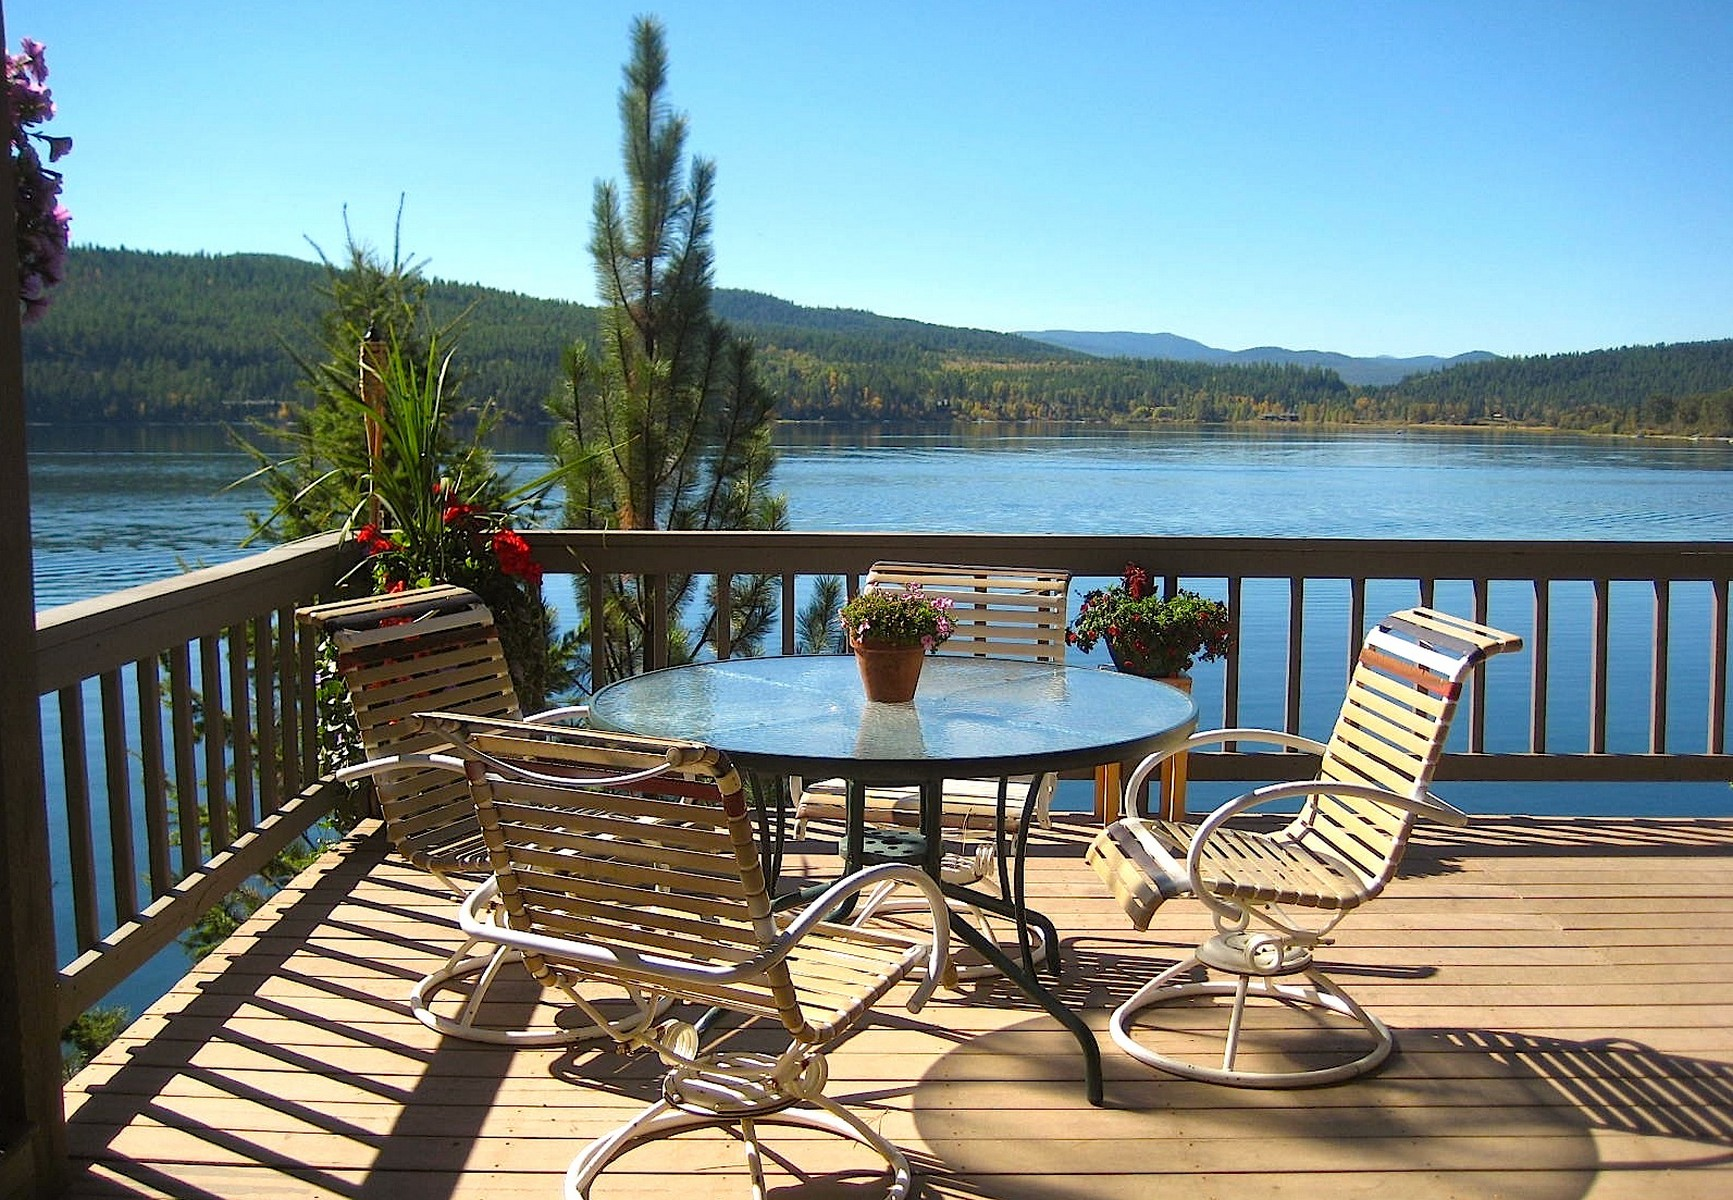 Villa per Vendita alle ore Whitefish Lake Cabin 77 Better Way Whitefish Lake, Whitefish, Montana, 59937 Stati Uniti